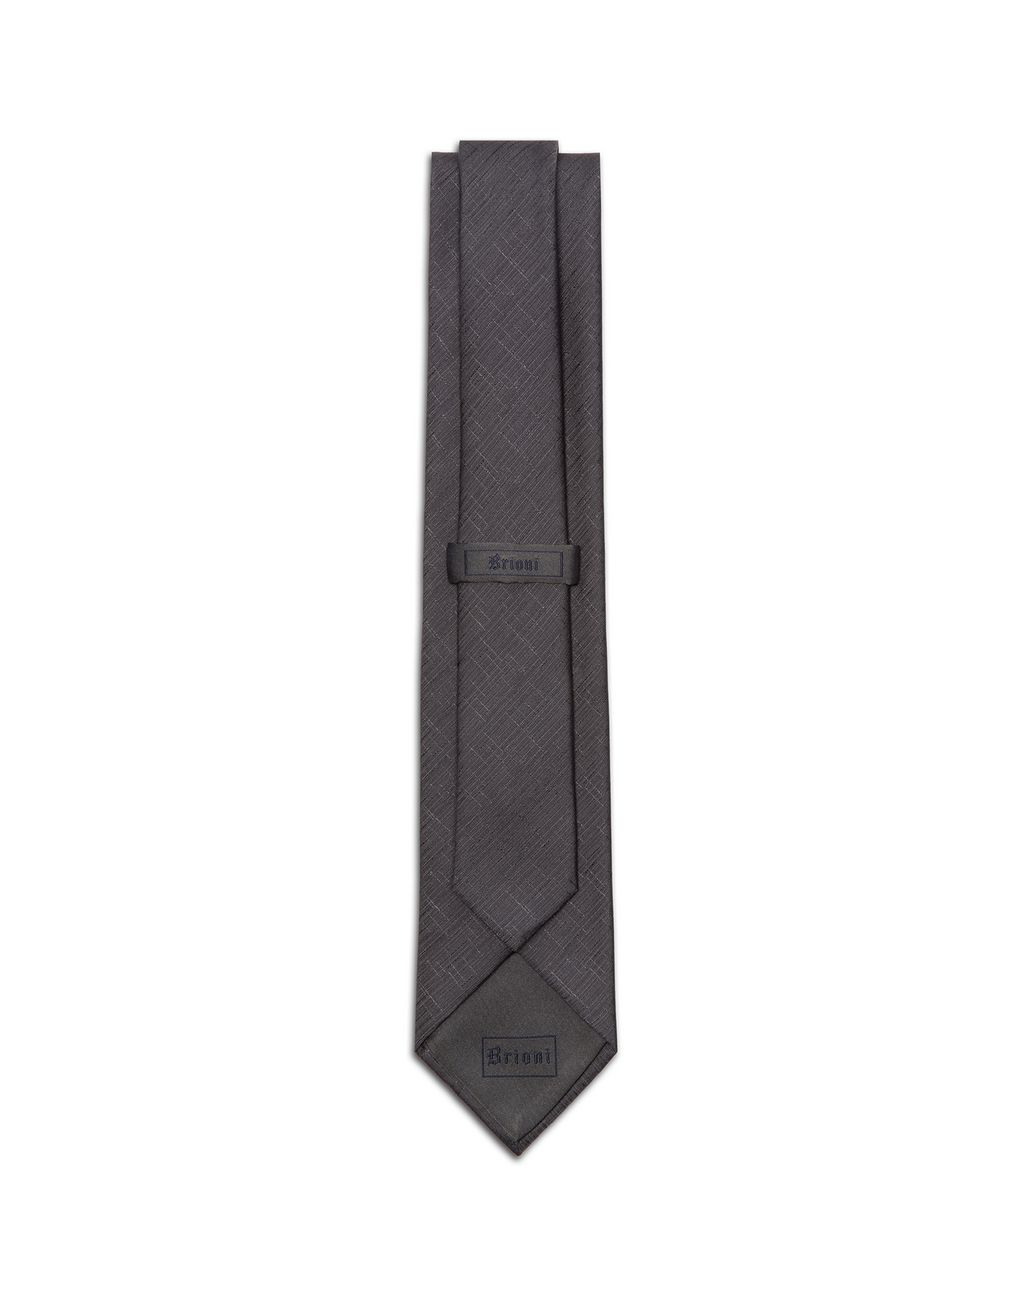 BRIONI Graphite Grey Shantung Tie Tie & Pocket Square U r